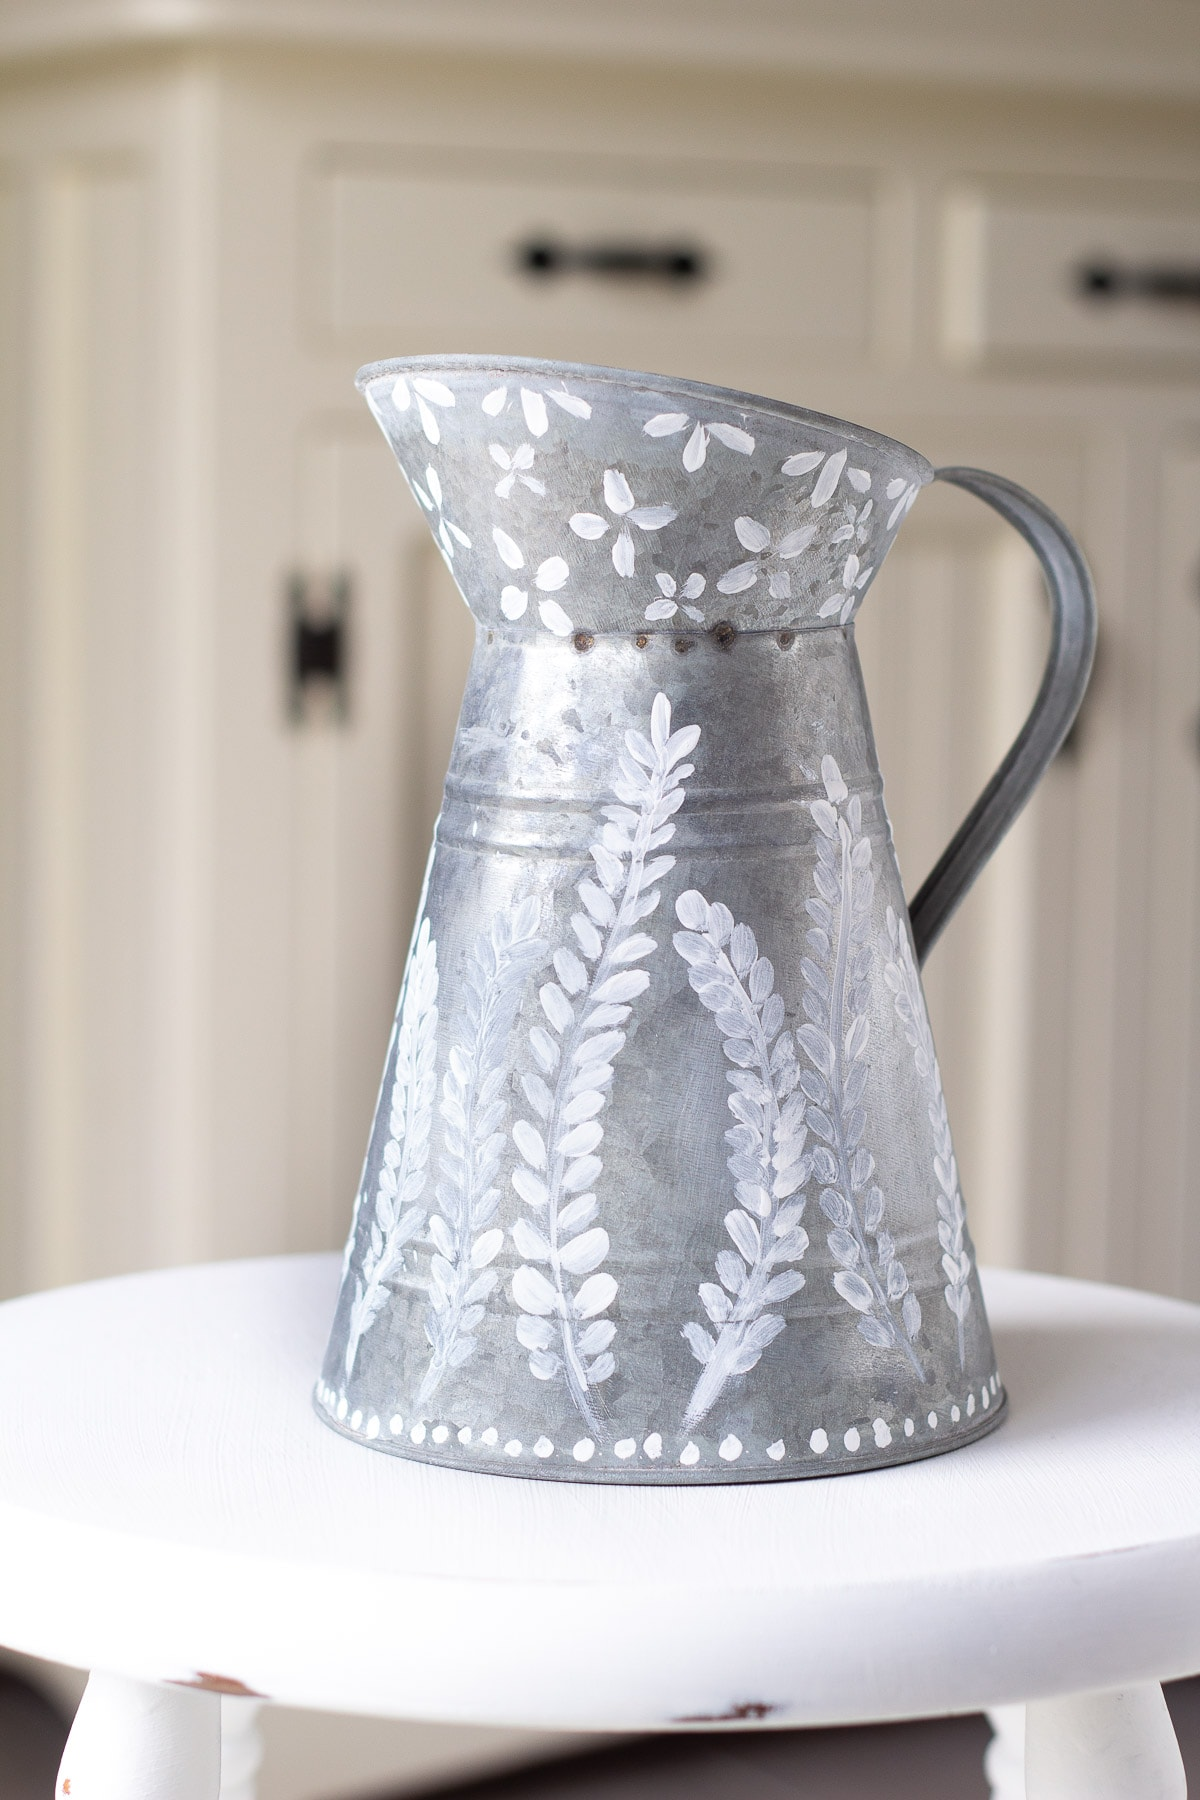 A galvanized pitcher with decorative painting.